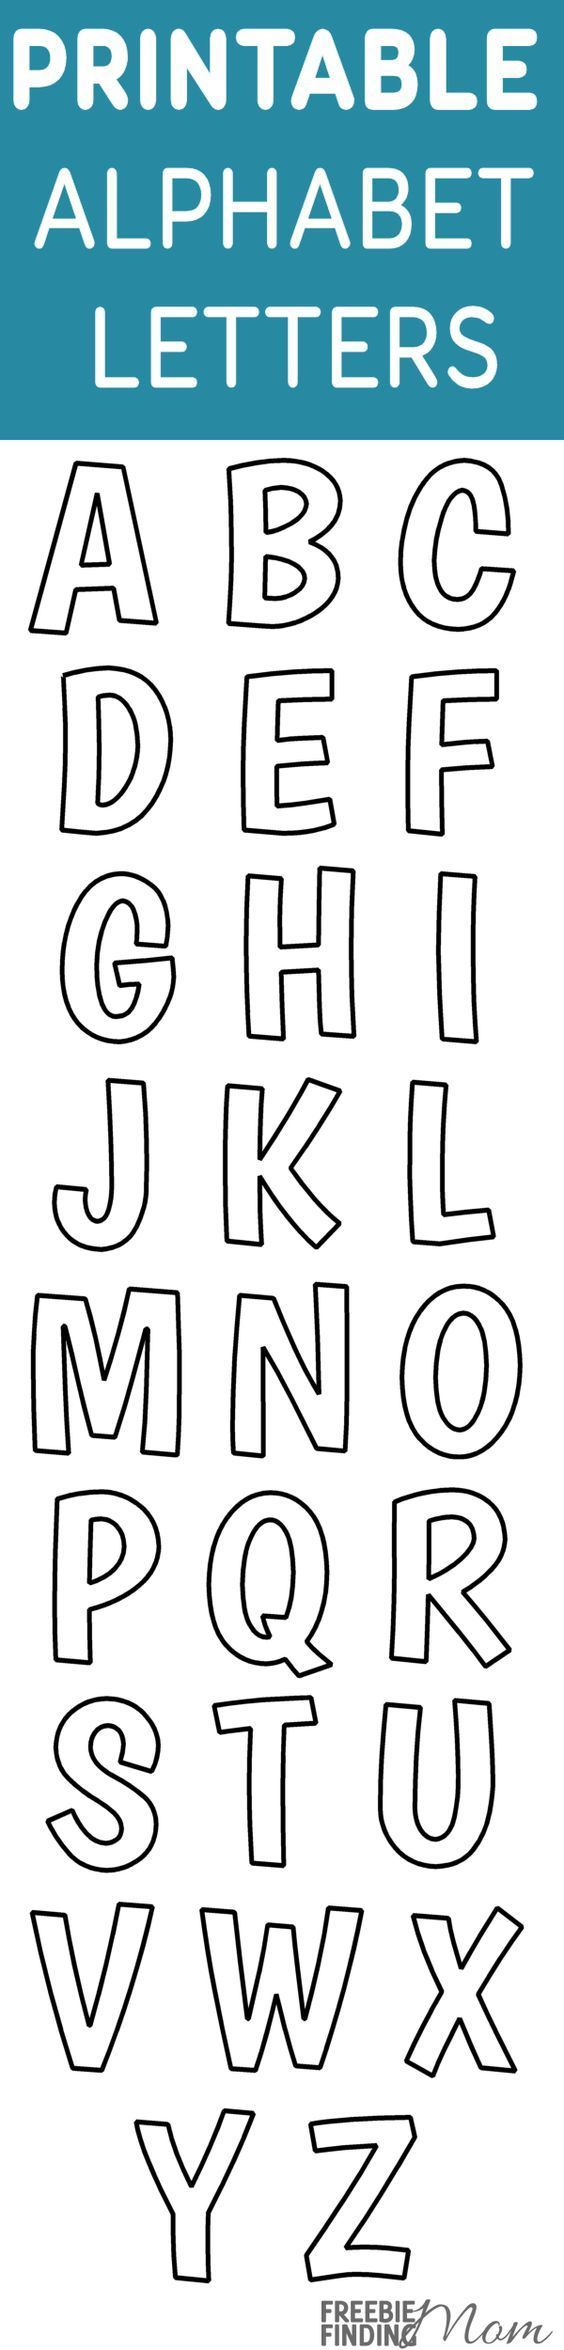 Fun Printable Alphabet Letters  Use Some Of These Amazing Letter